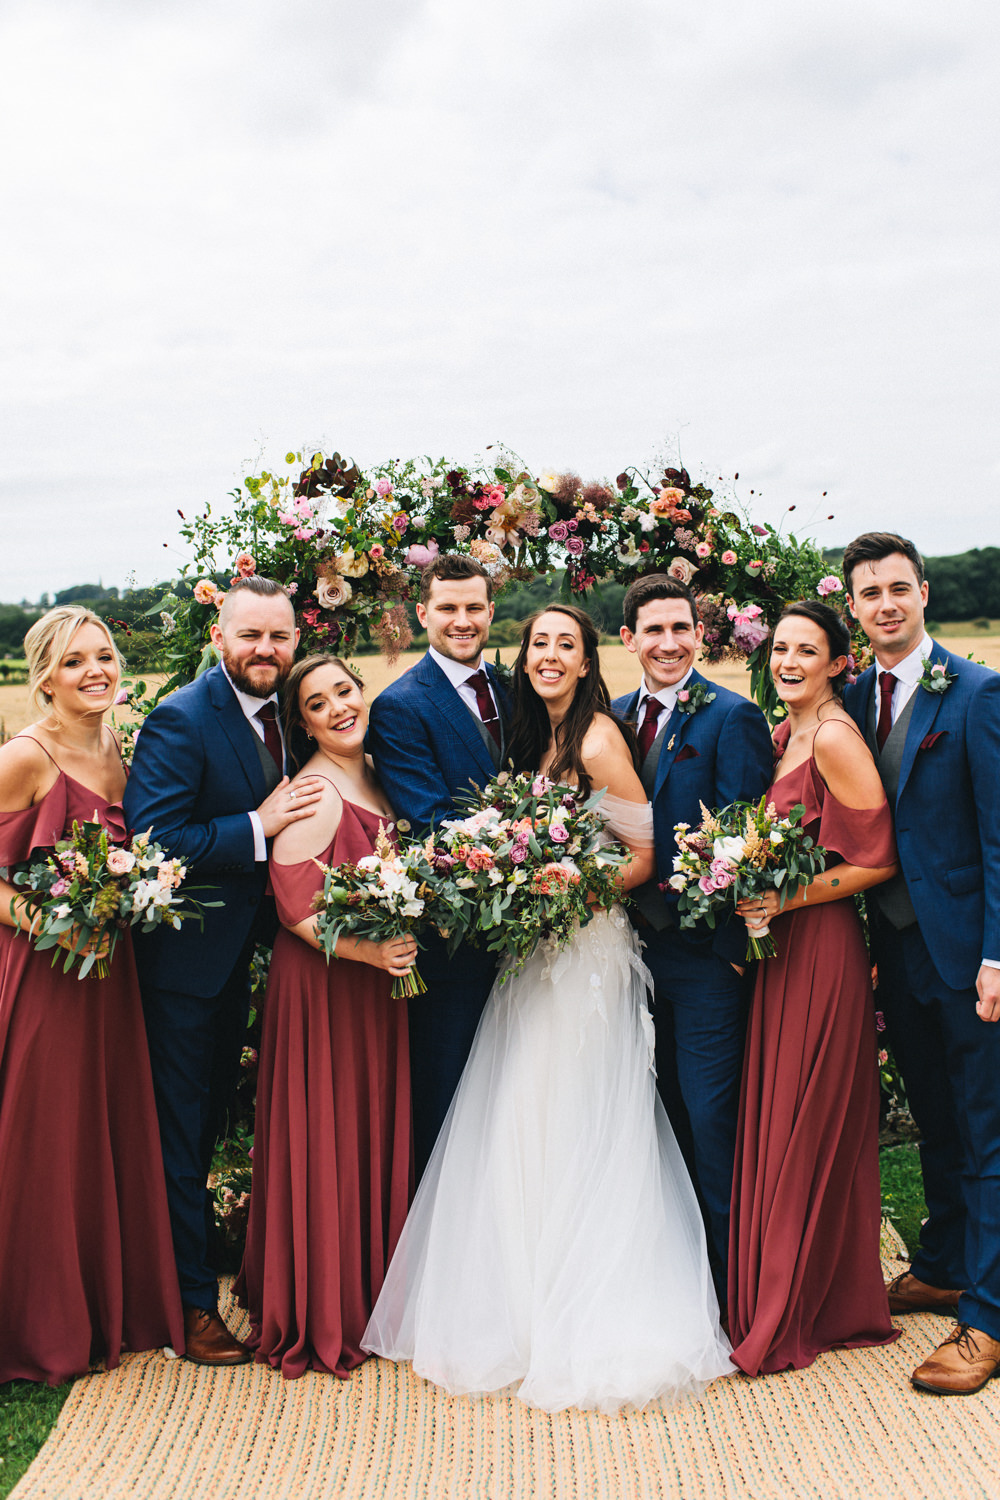 Bridesmaid Dress Bridesmaids Dresses Red Burgundy Groomsmen Suit Blue Check Waistcoat Red Burgundy Outbuildings Wedding Jessica O'Shaughnessy Photography